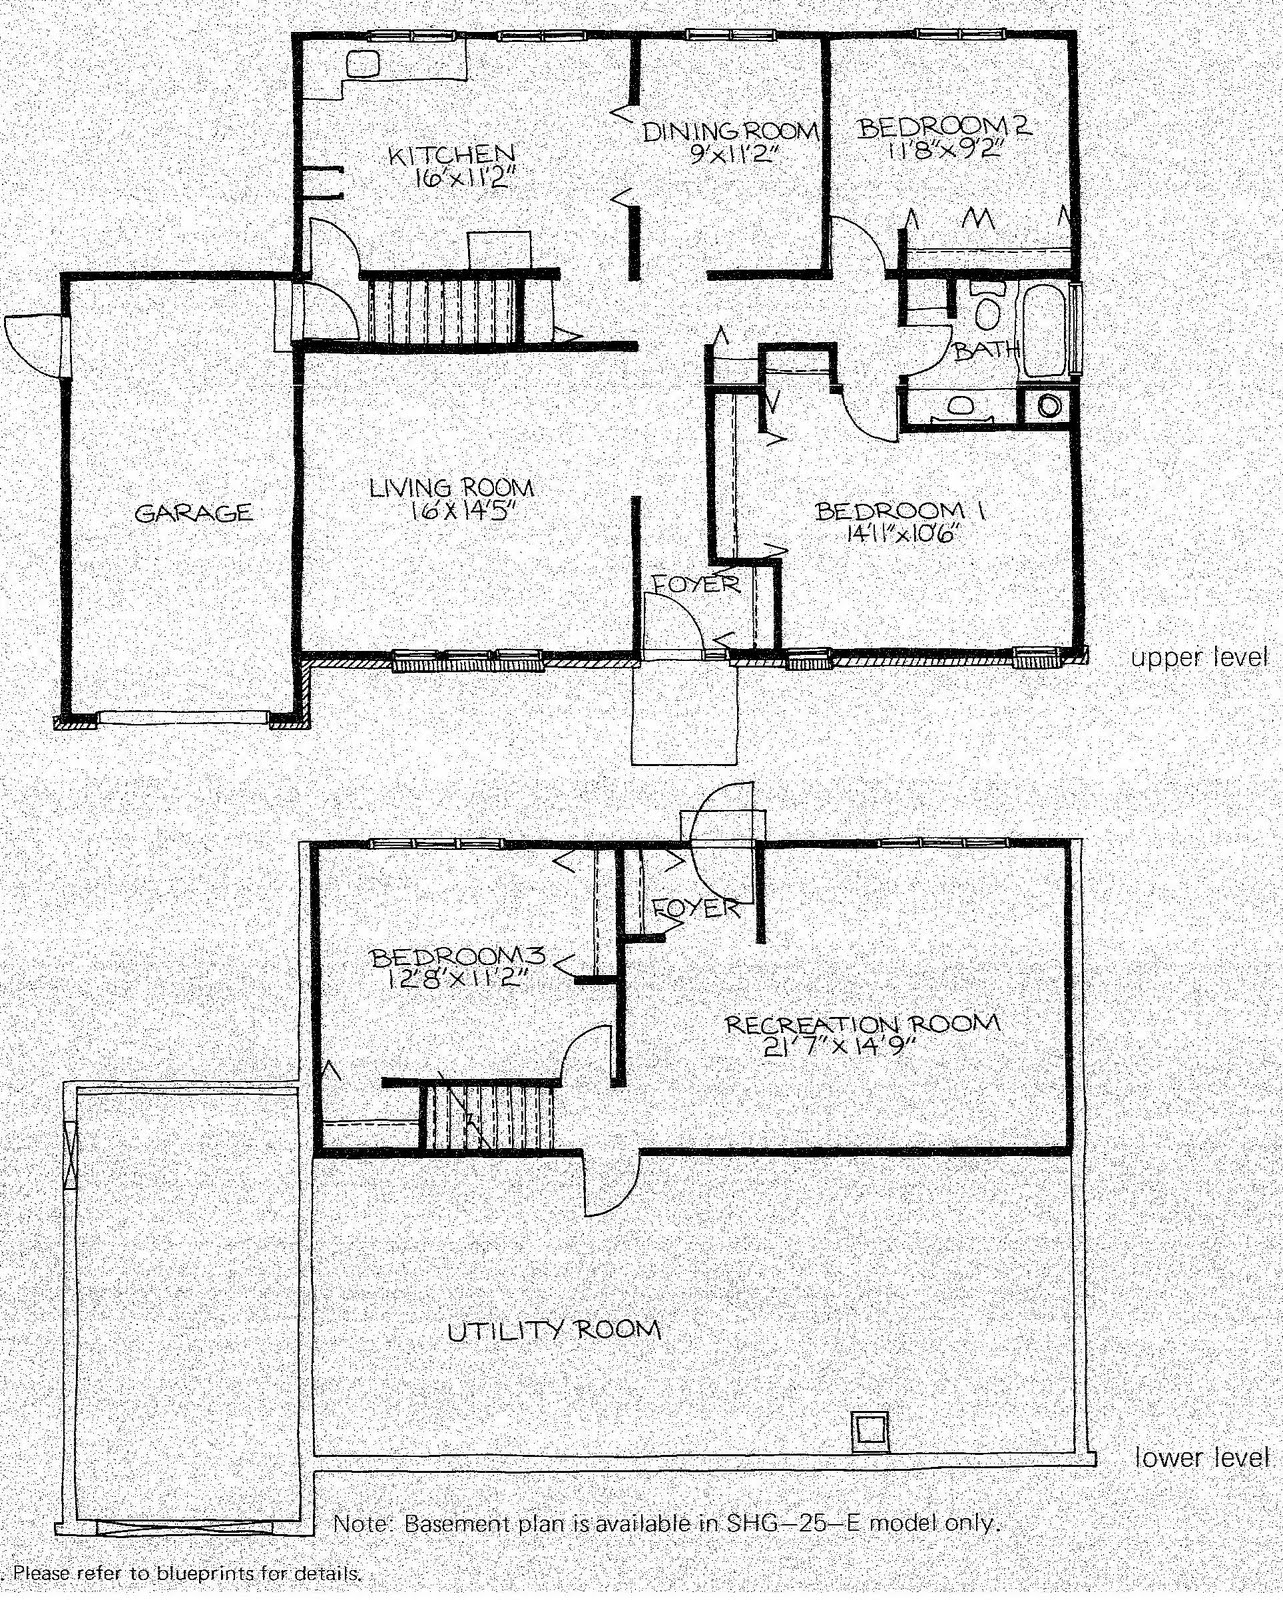 Basement Stair Designs Plans: Mid-Century Modern And 1970s-Era Ottawa: The Bungalow